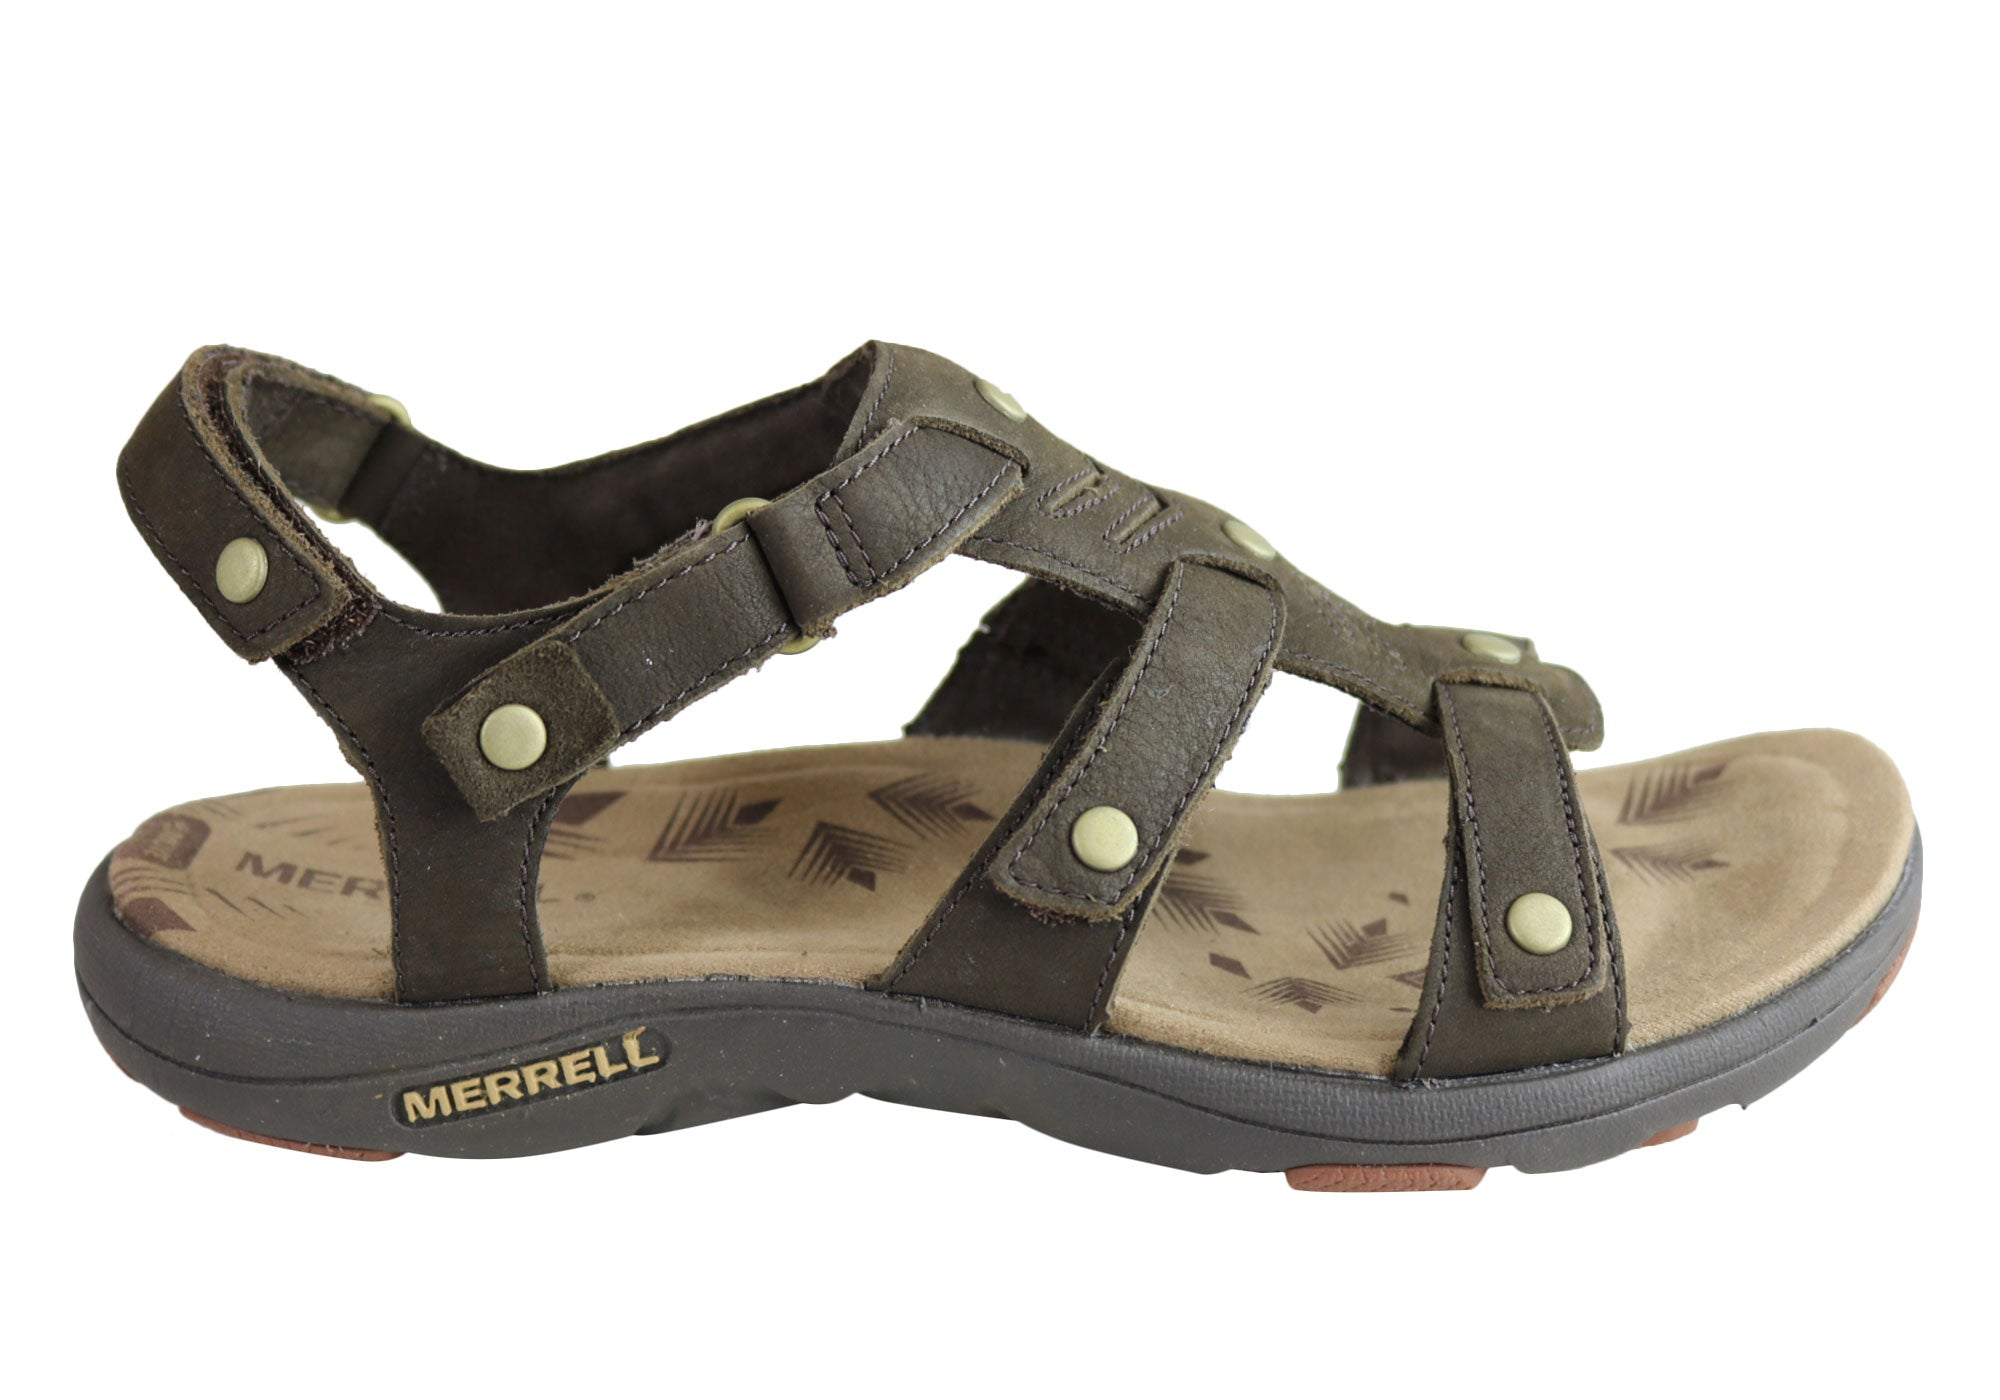 272ee9869f7 Home Merrell Womens Comfort Flat Supportive Adhera Three Strap II Sandals.  Brown ...